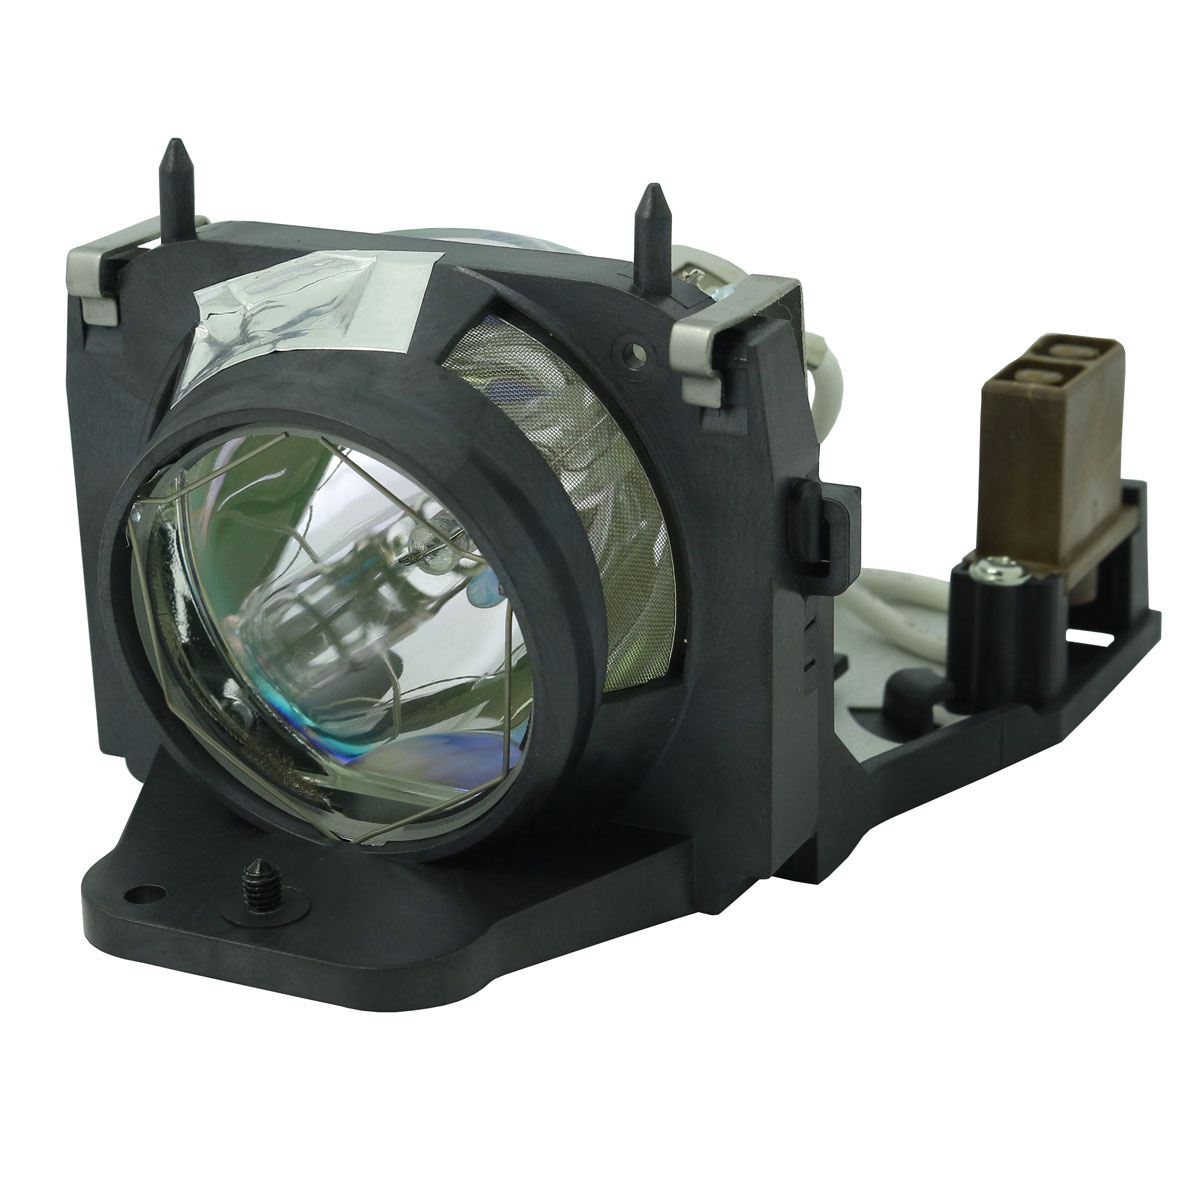 Lamp Housing For Infocus LP530 Projector DLP LCD Bulb